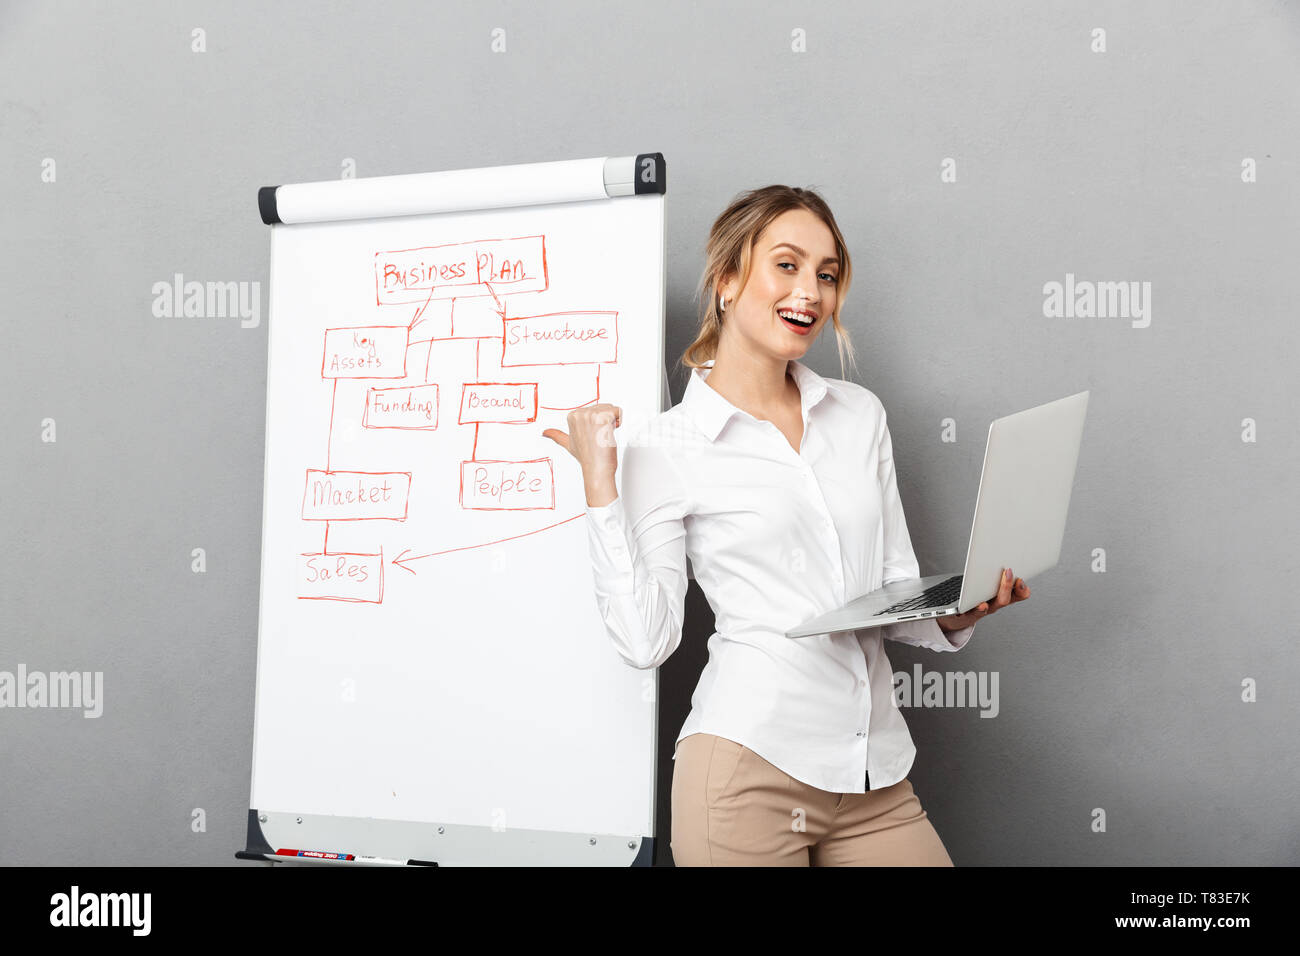 Image of happy businesswoman in formal wear using flipchart and laptop while making presentation in the office isolated over gray background - Stock Image